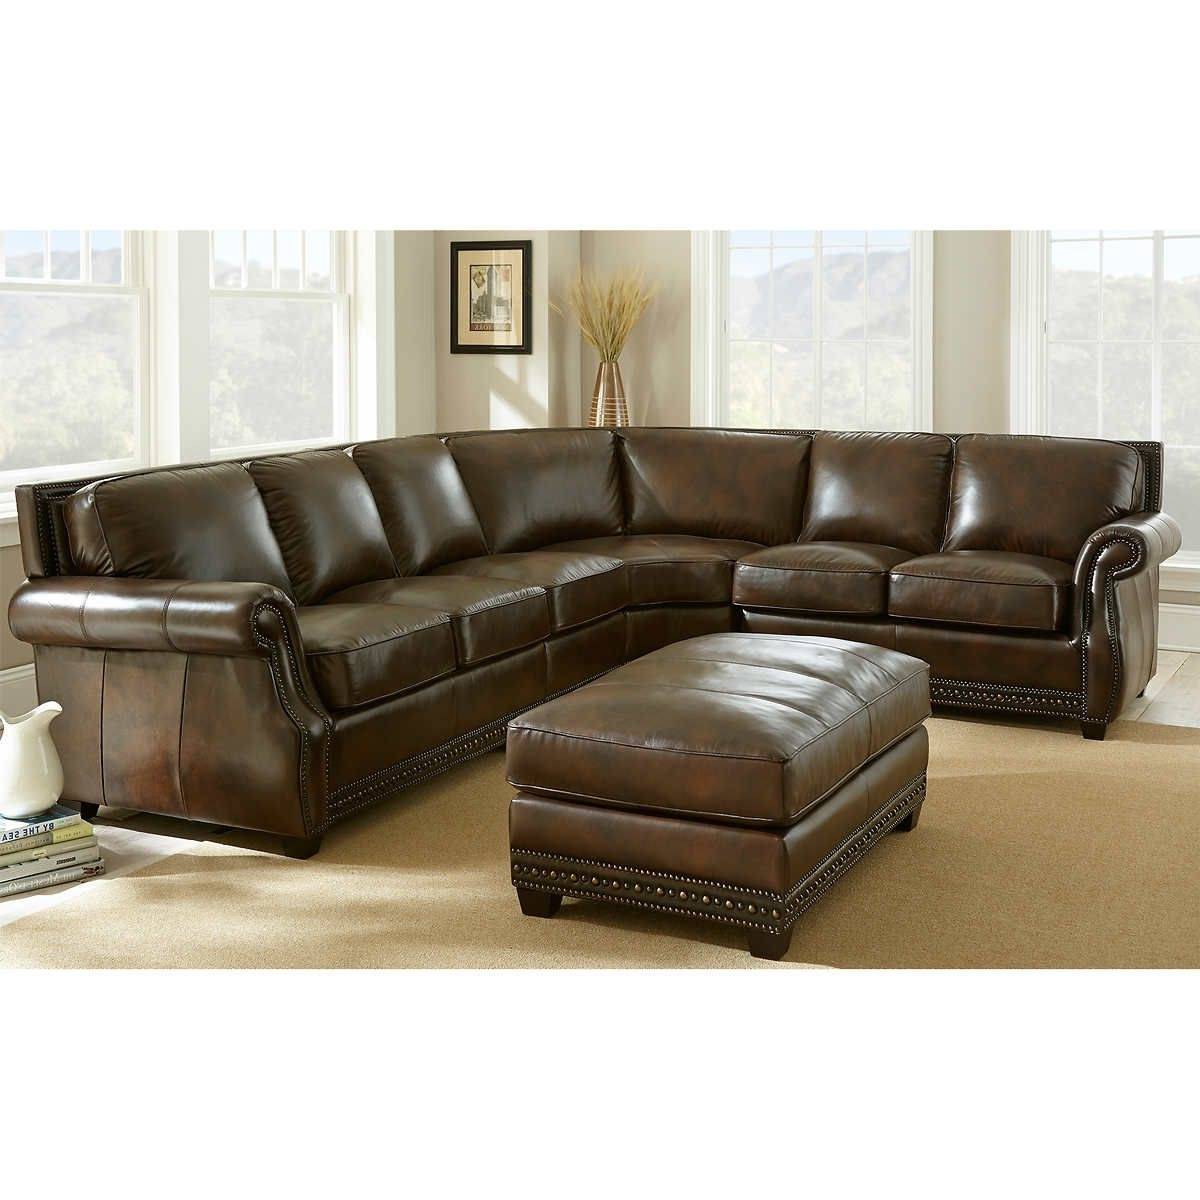 Greenville Sc Sectional Sofas Pertaining To Favorite Awesome Leather Couch Sectional , New Leather Couch Sectional (View 5 of 20)